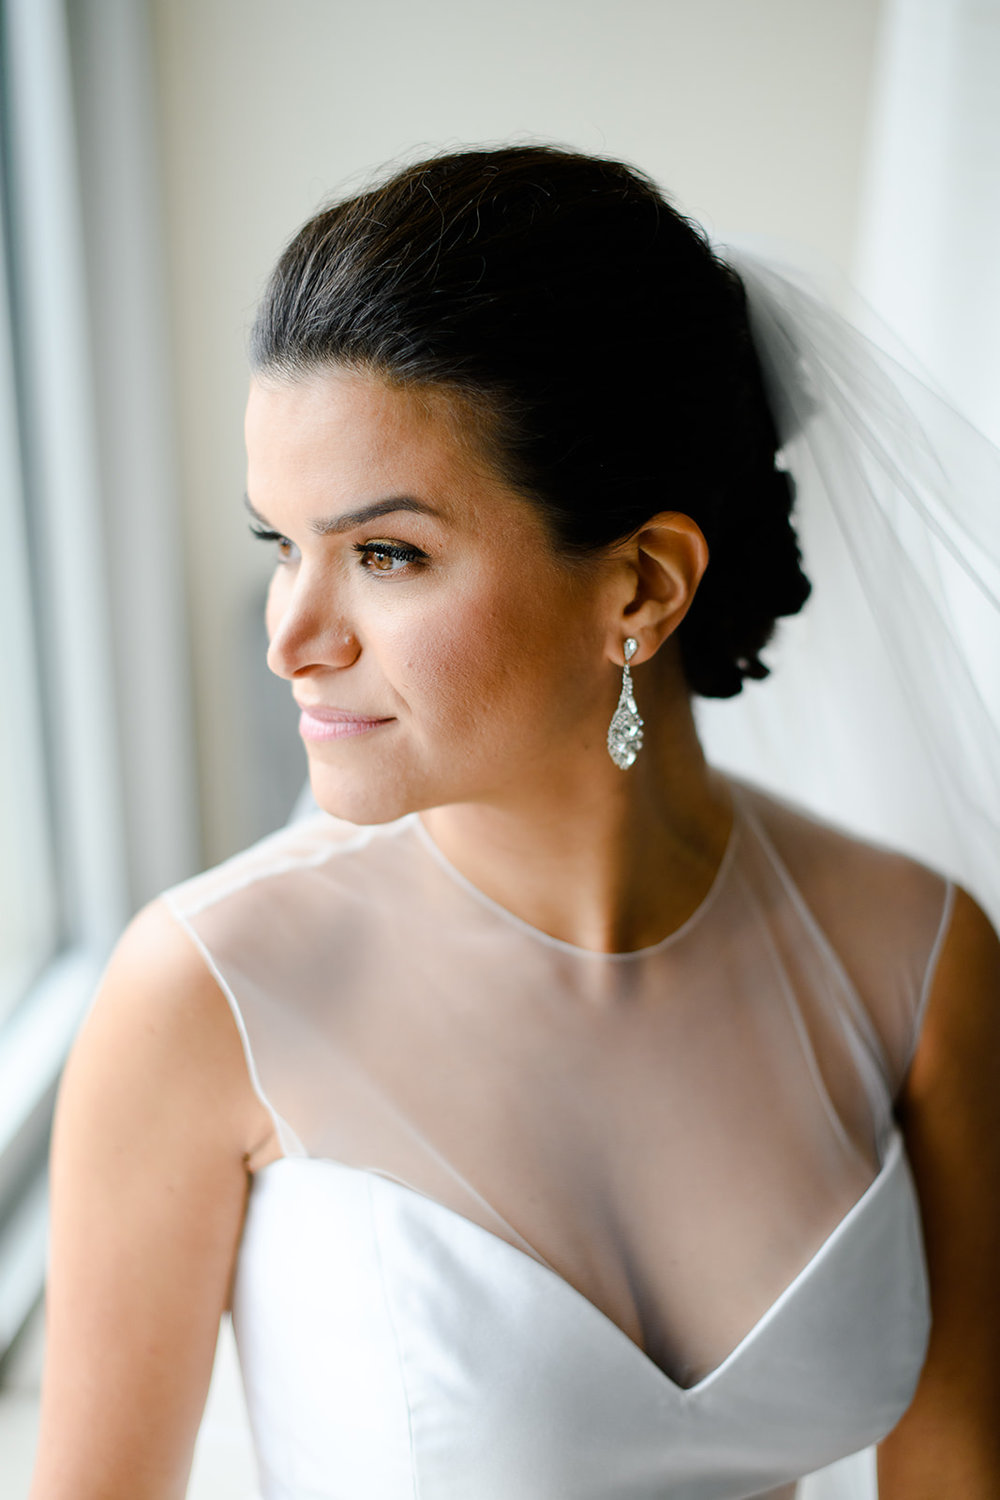 Minimalist bridal portrait near a window at the Four Seasons in Chicago